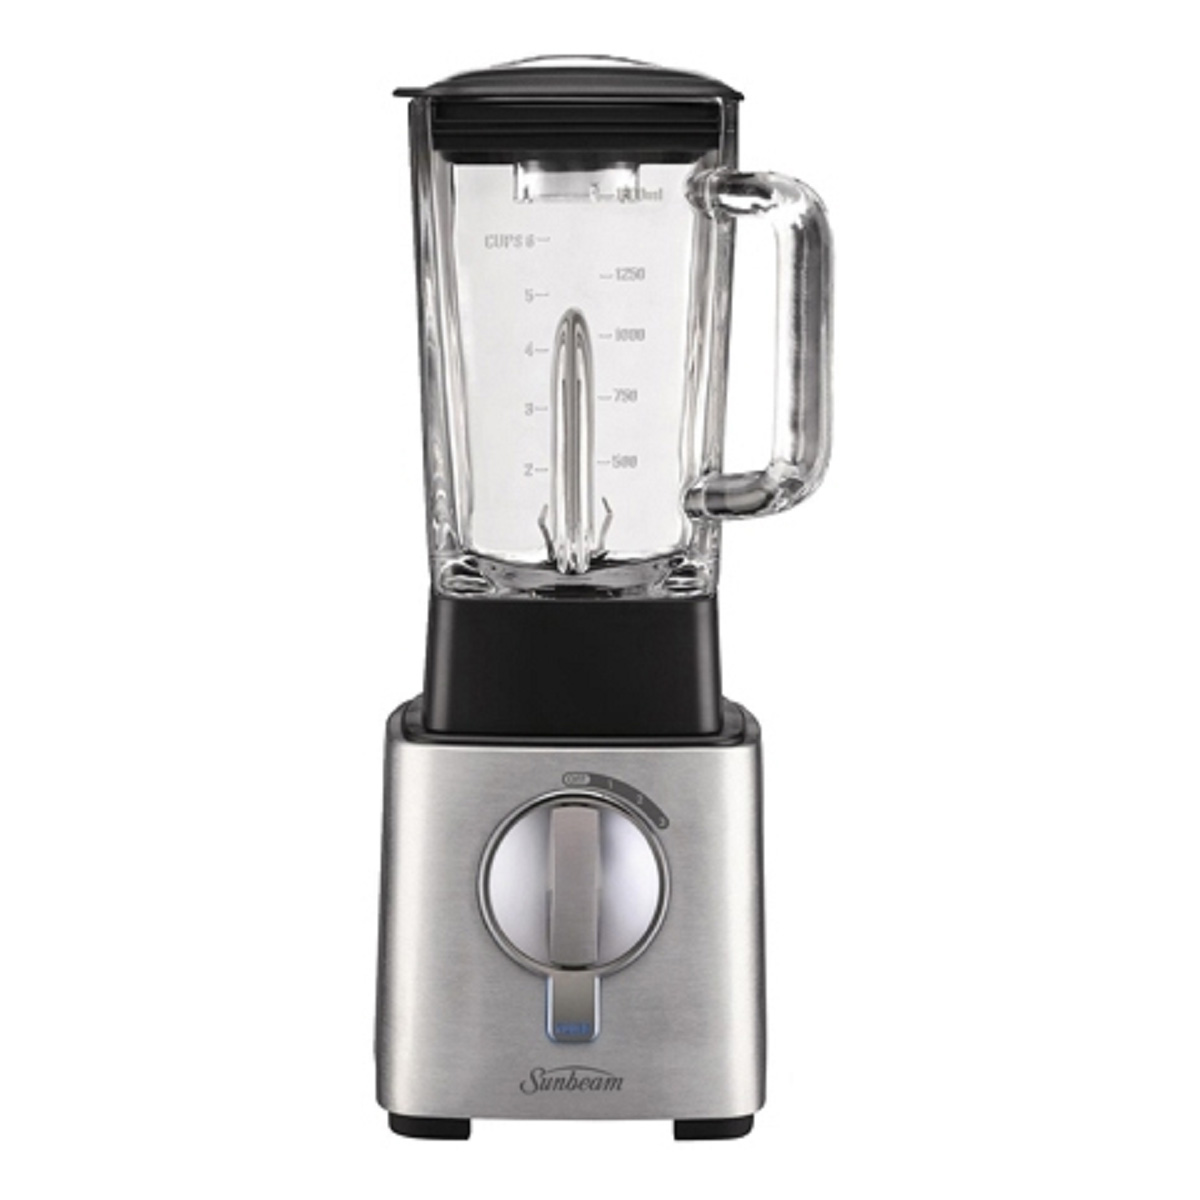 Sunbeam Blender PB7650